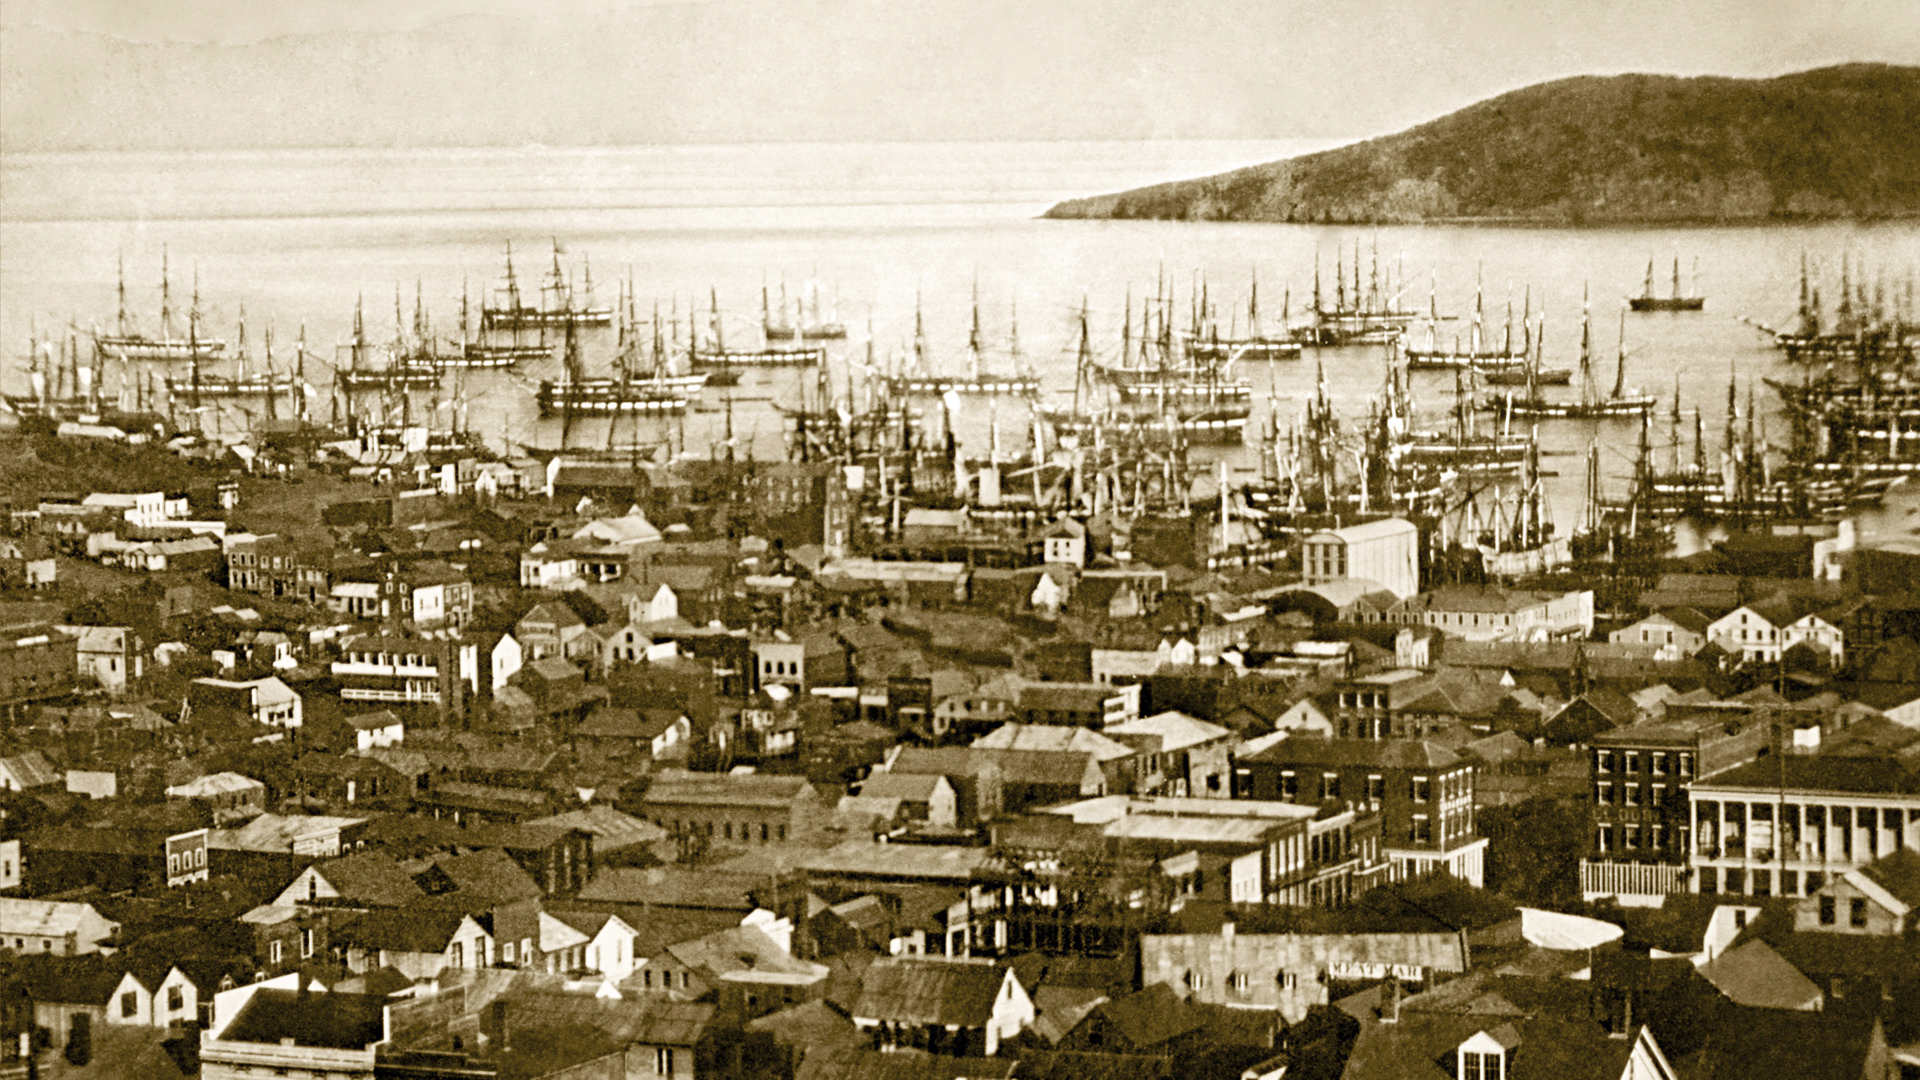 Sailing ships in San Francisco harbor. Library of Congress